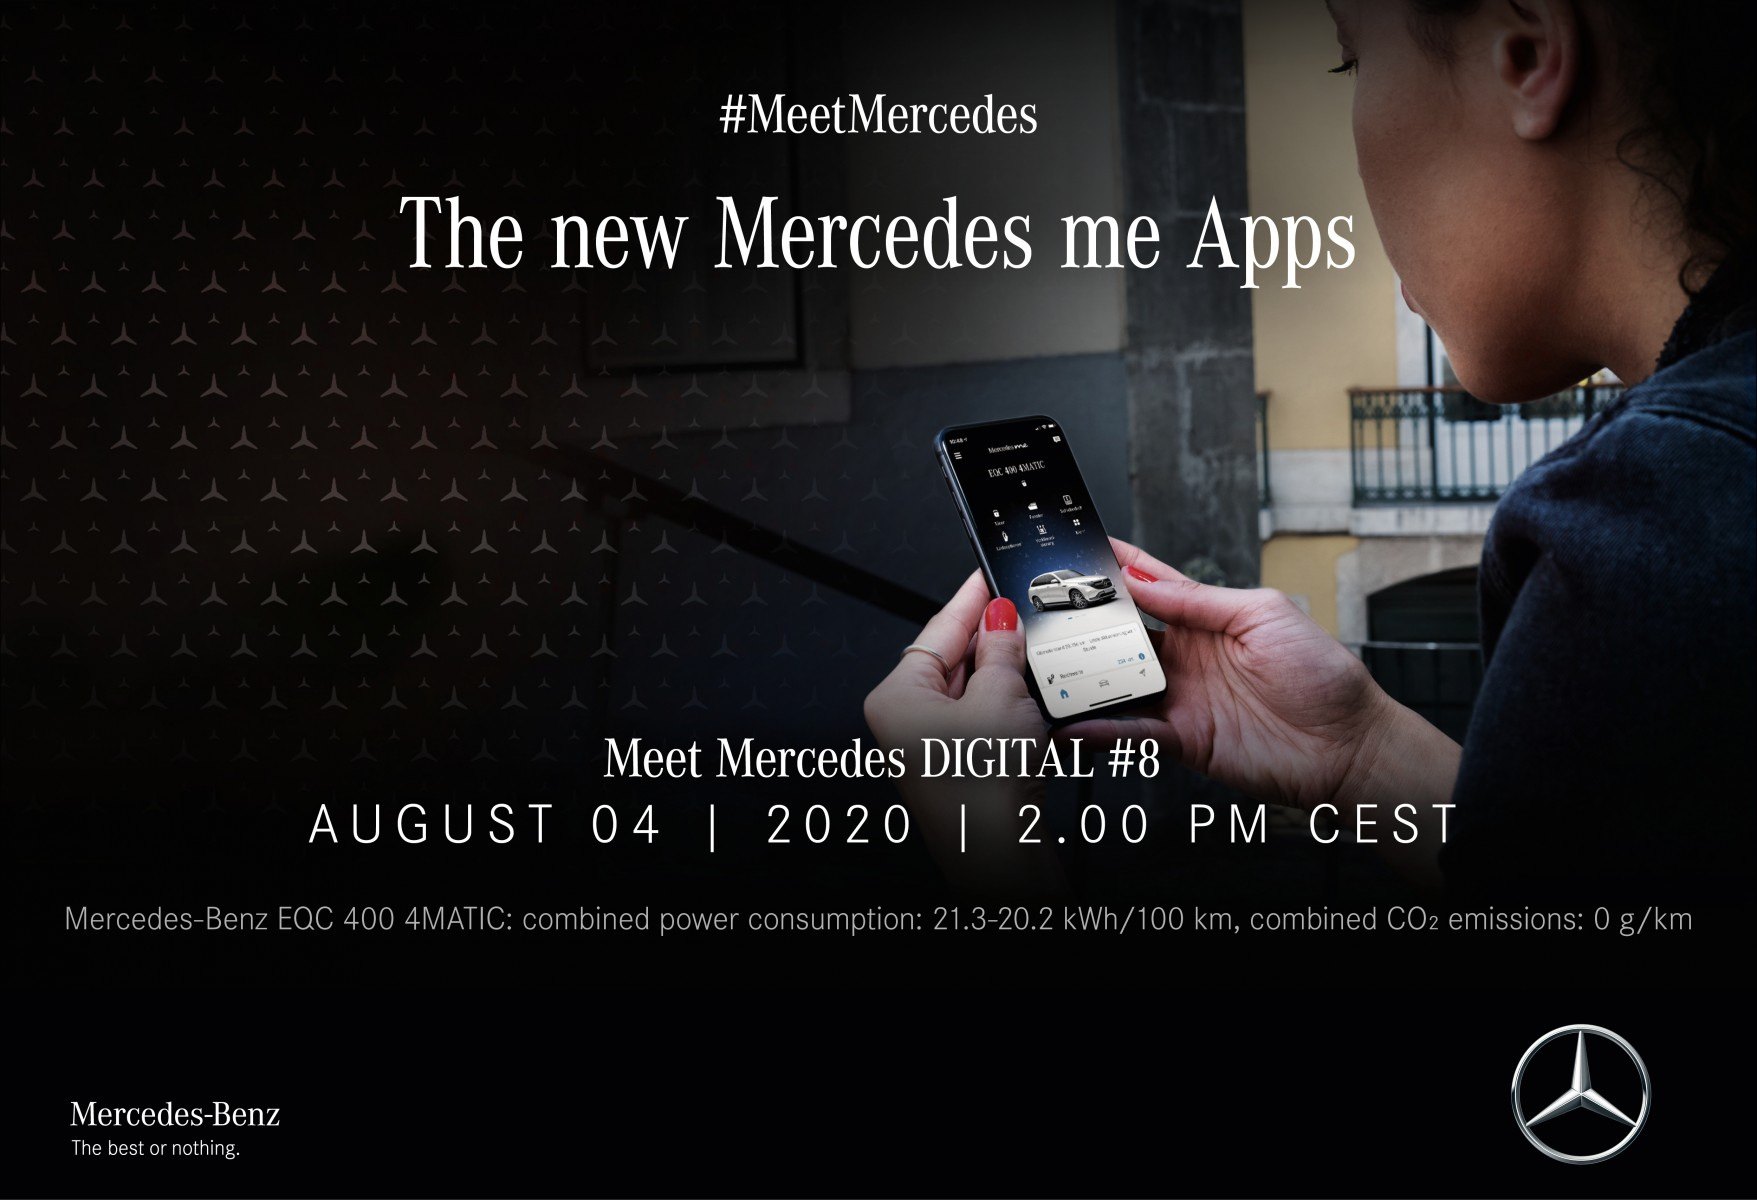 Meet Mercedes DIGITAL #8